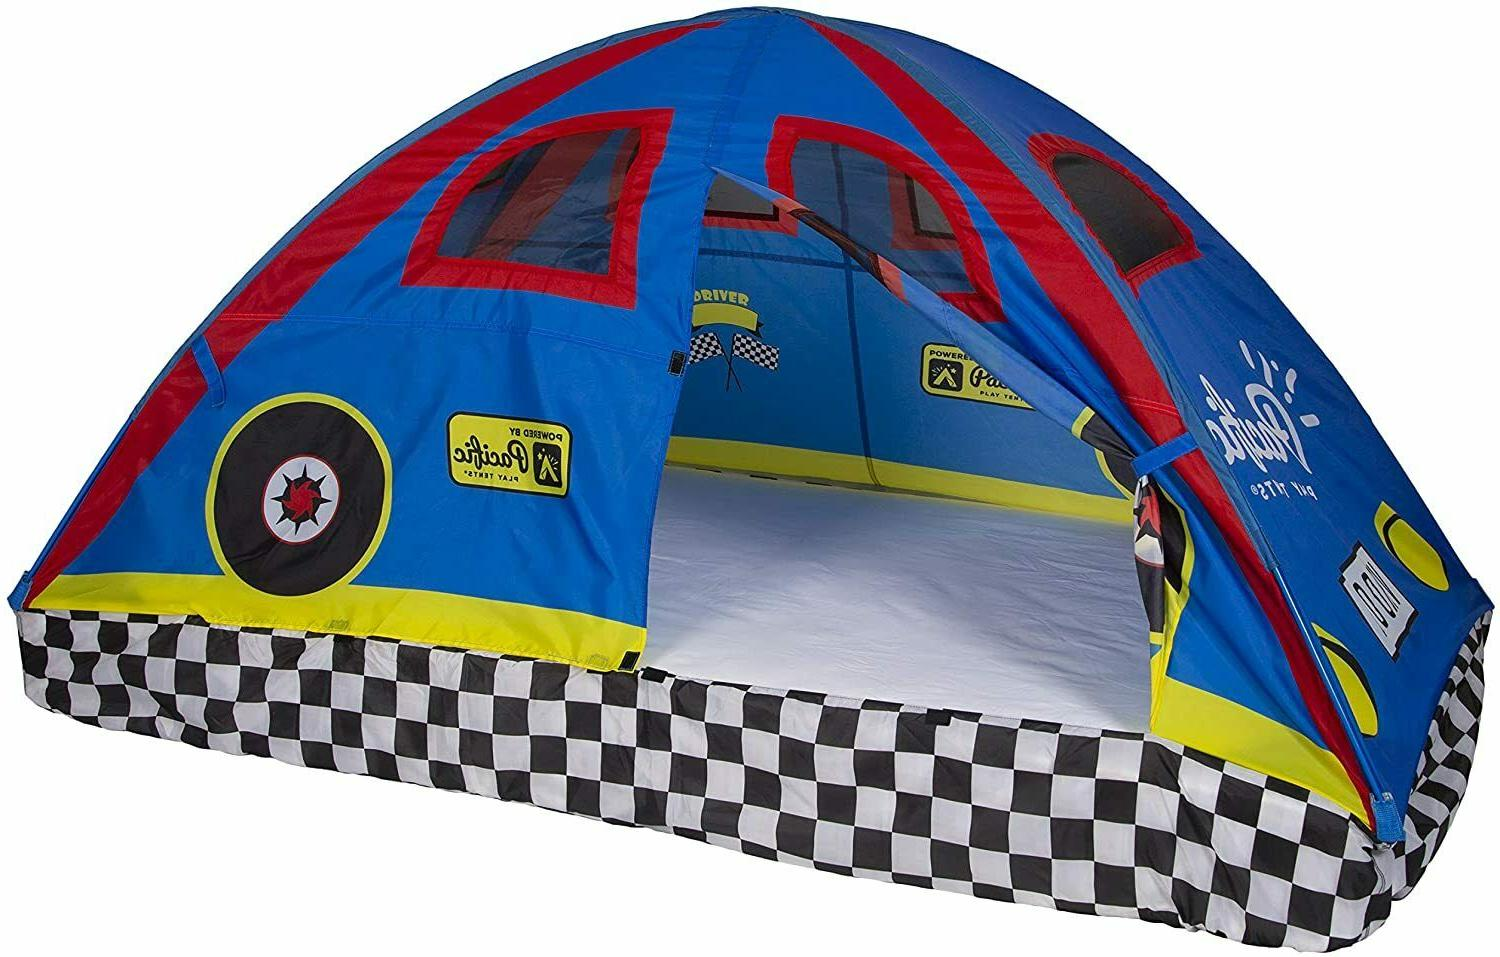 19710 kids rad racer bed tent playhouse